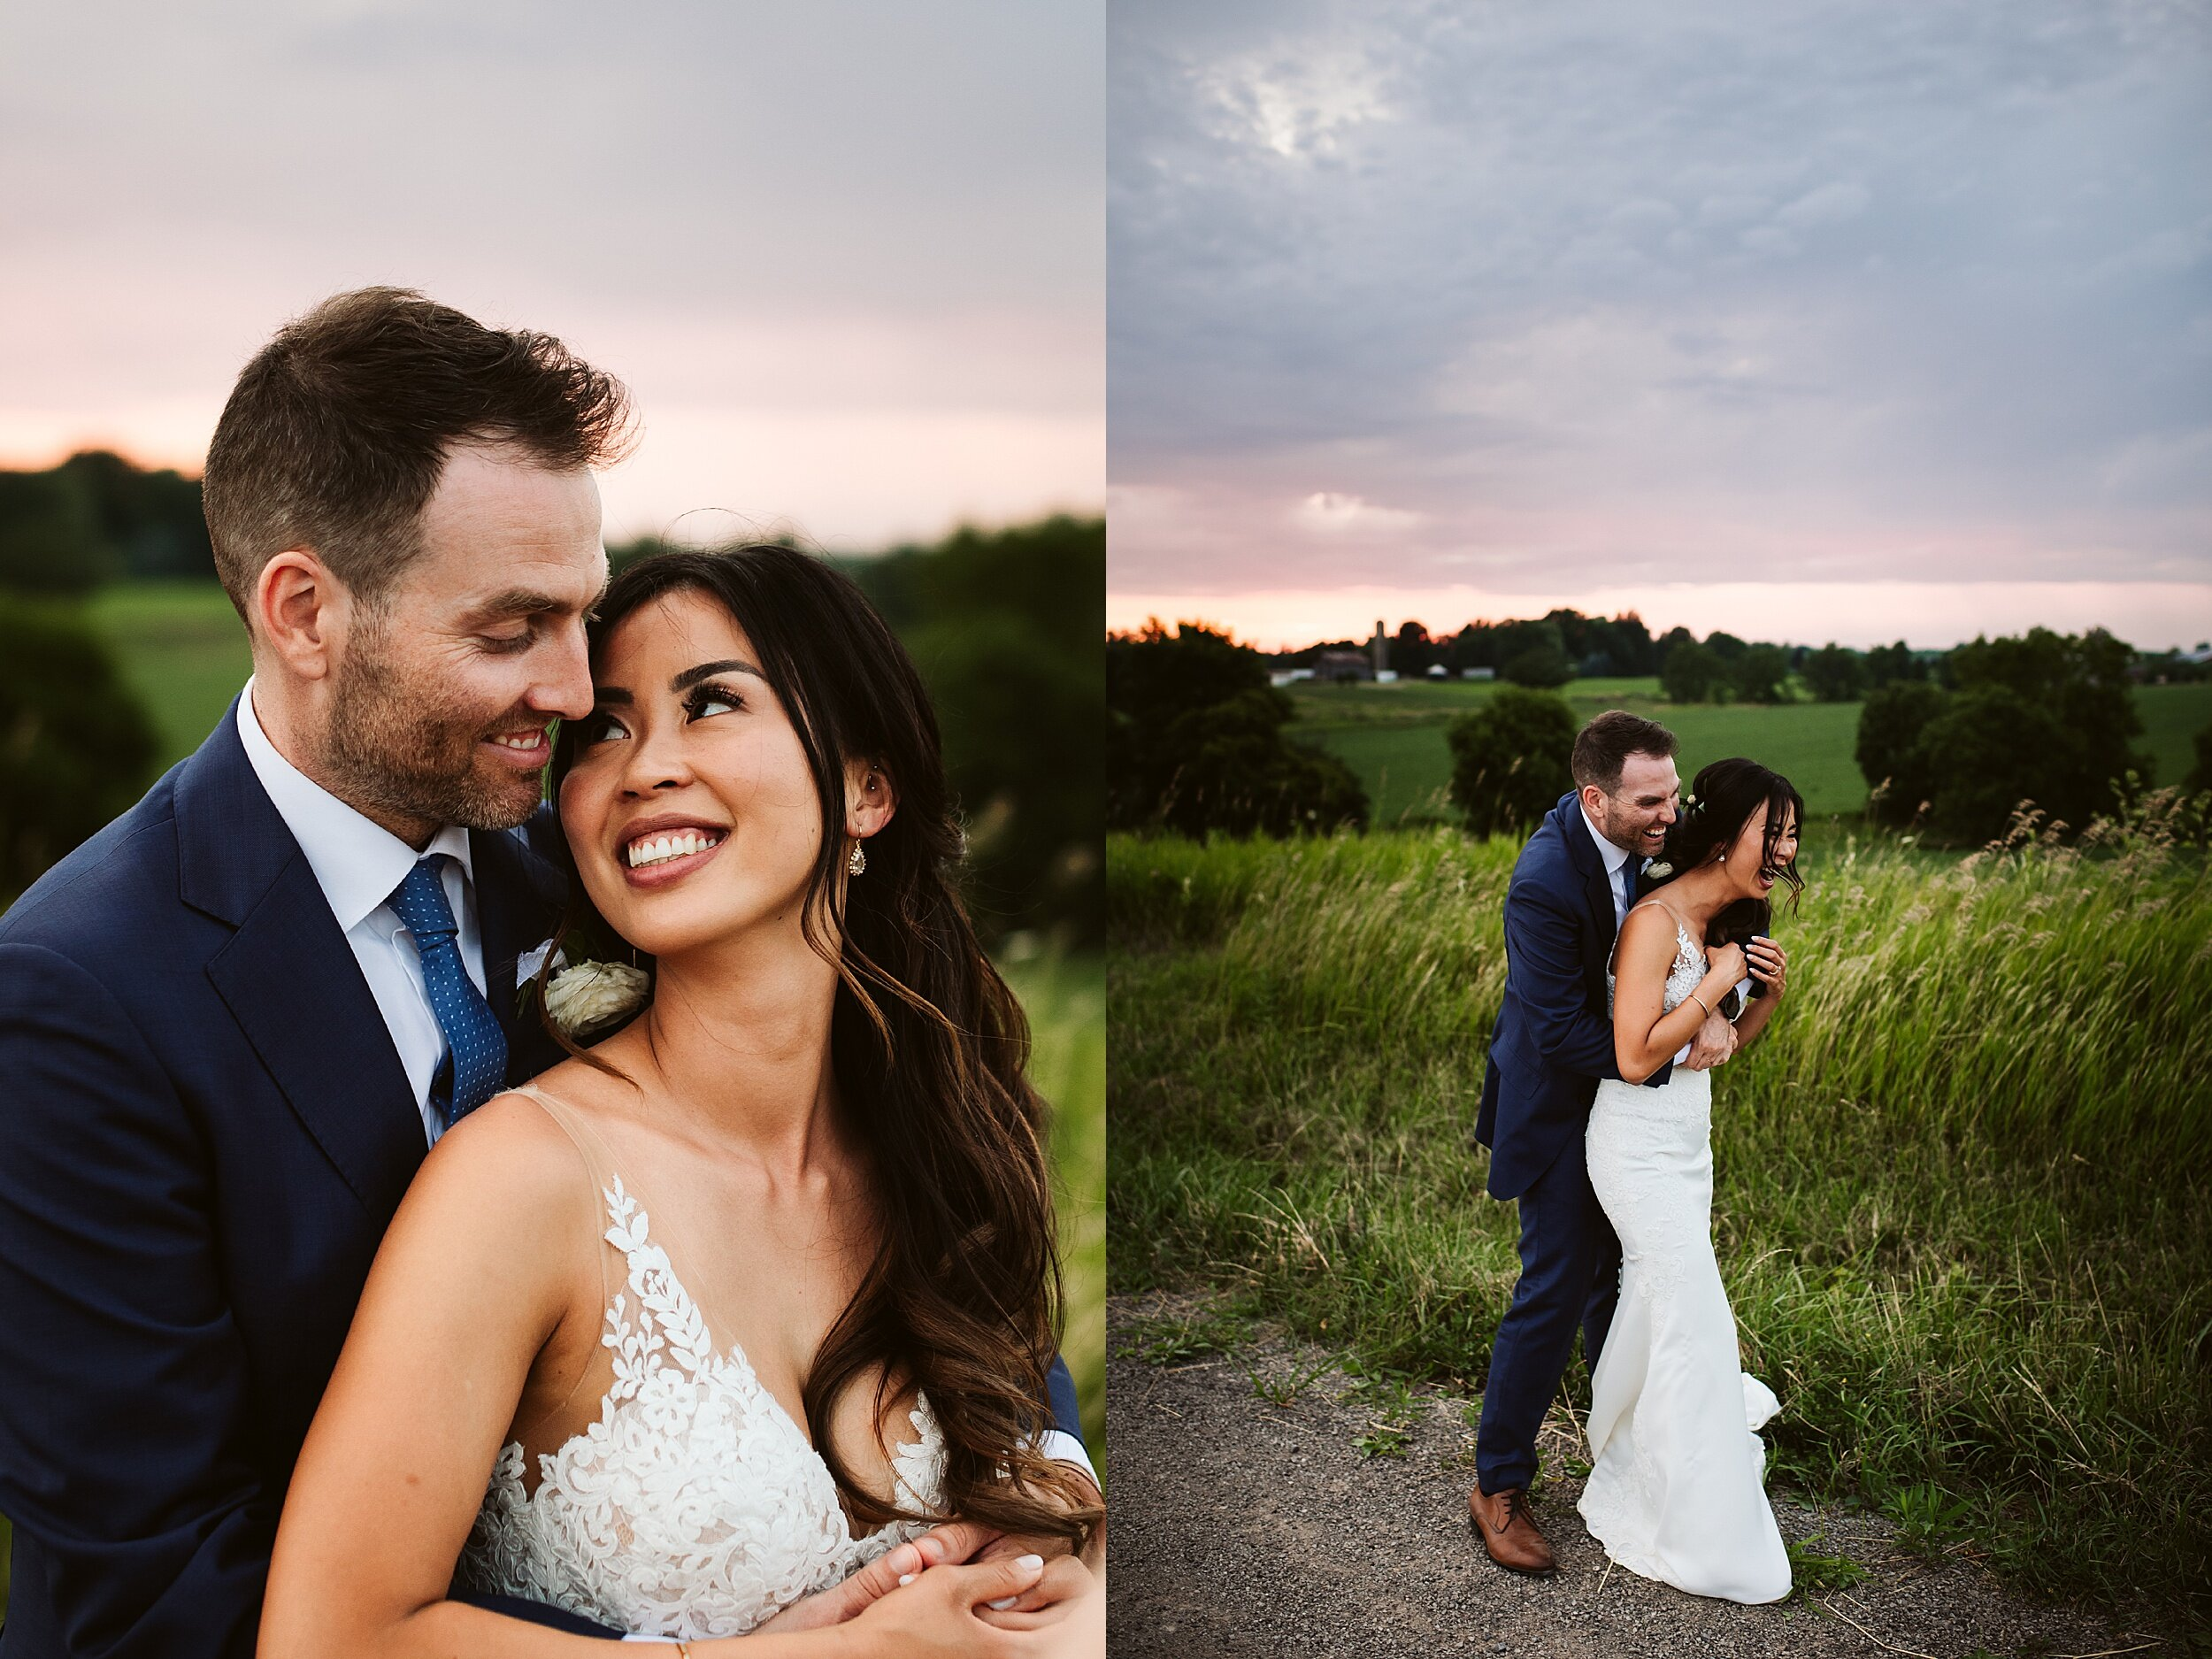 Glen_Drummon_Farm_Wedding_Toronto_Photographers_Fox_Photography_Dyments_0062.jpg